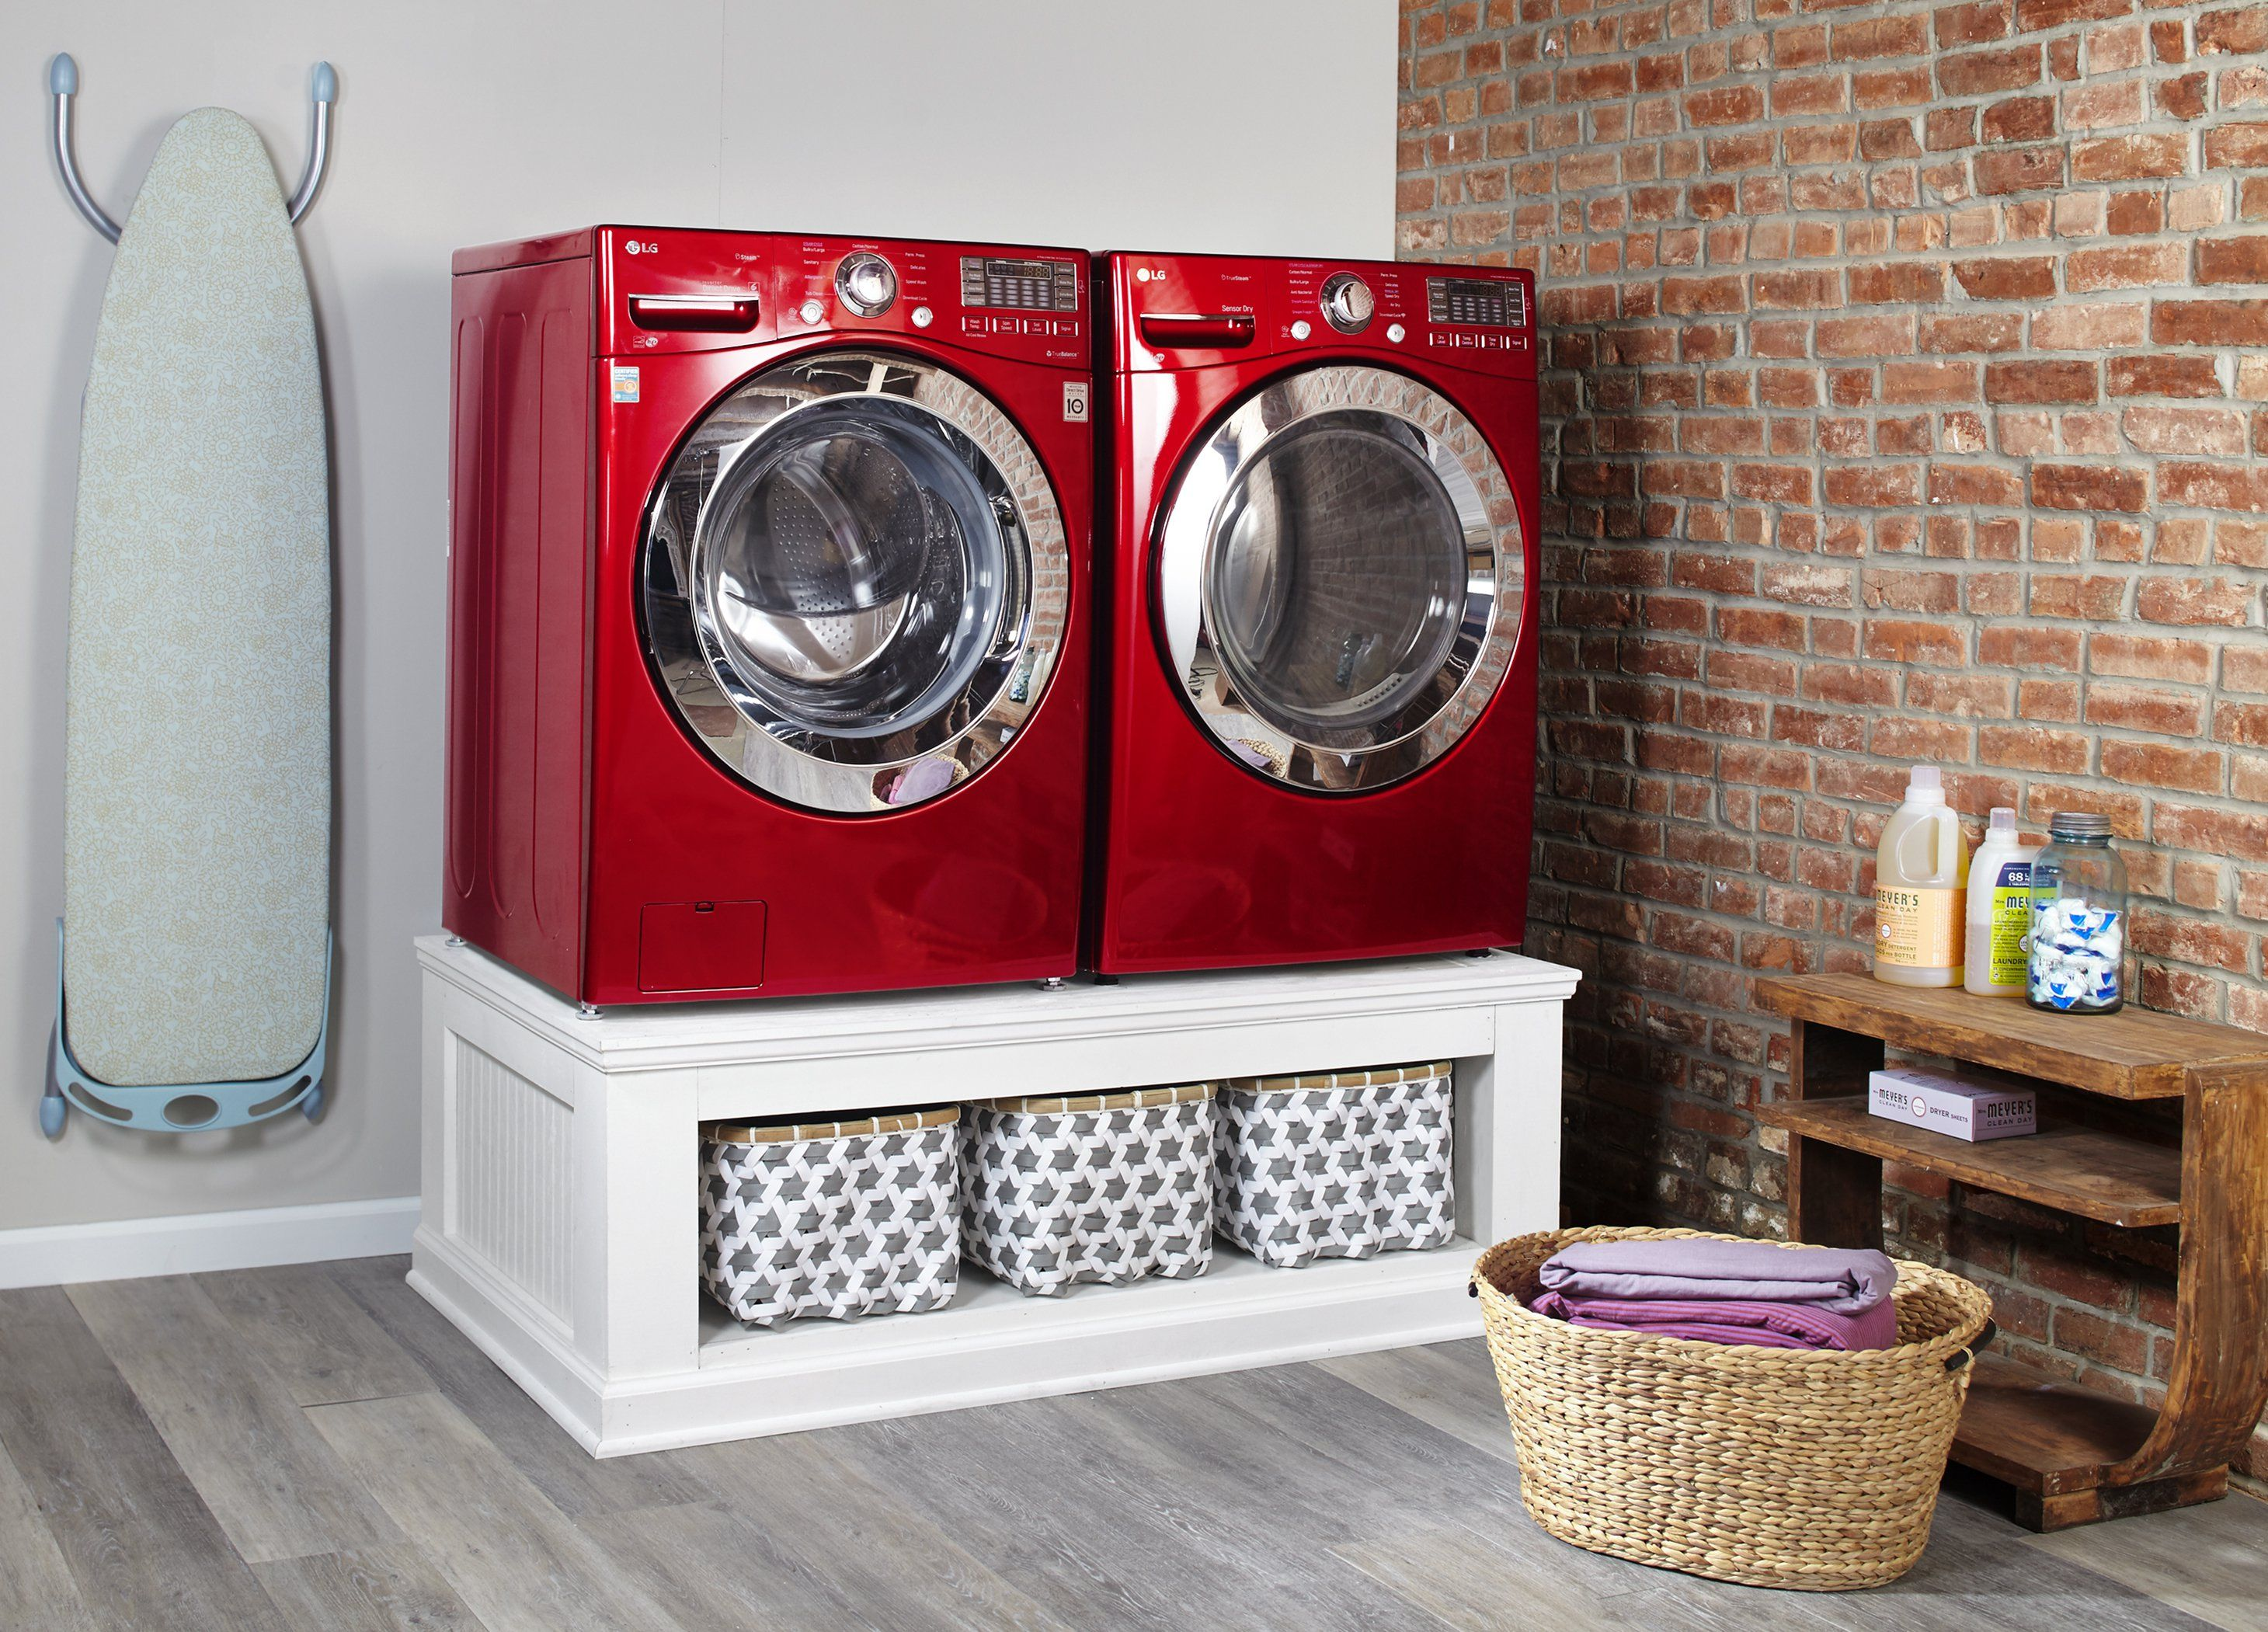 washer diy ana white how dryer beautiful build to best of for and projects pedestals pedestal